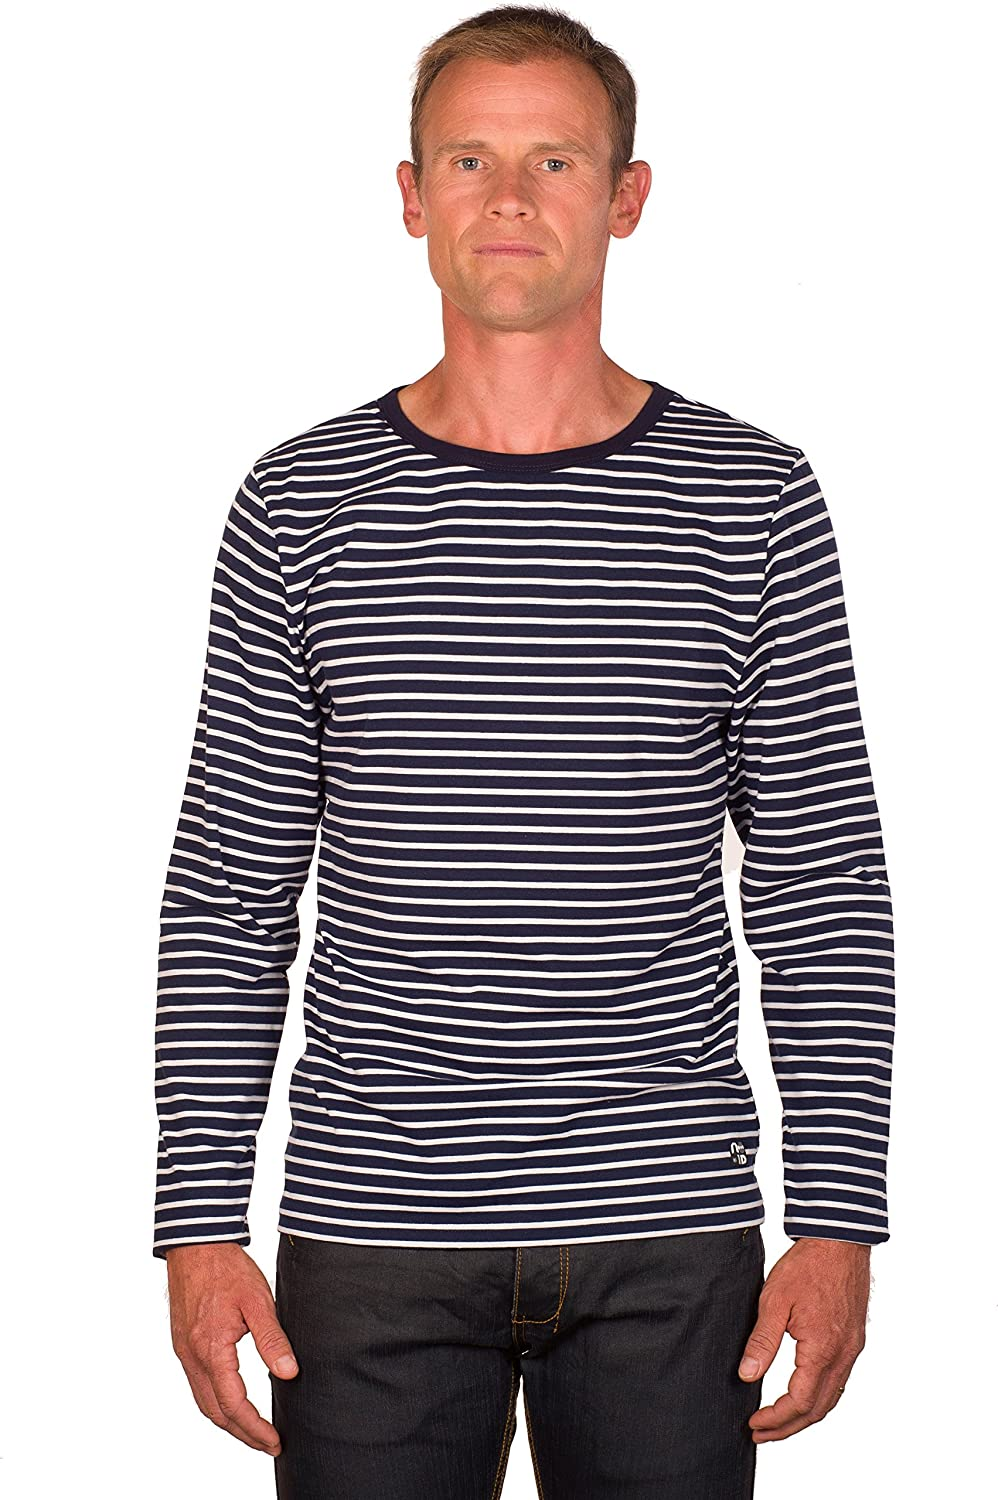 467ce25eab UGHOLIN Men's Breton Stripe Cotton Printed Long Sleeve T-shirt - Navy Blue  | Amazon.com